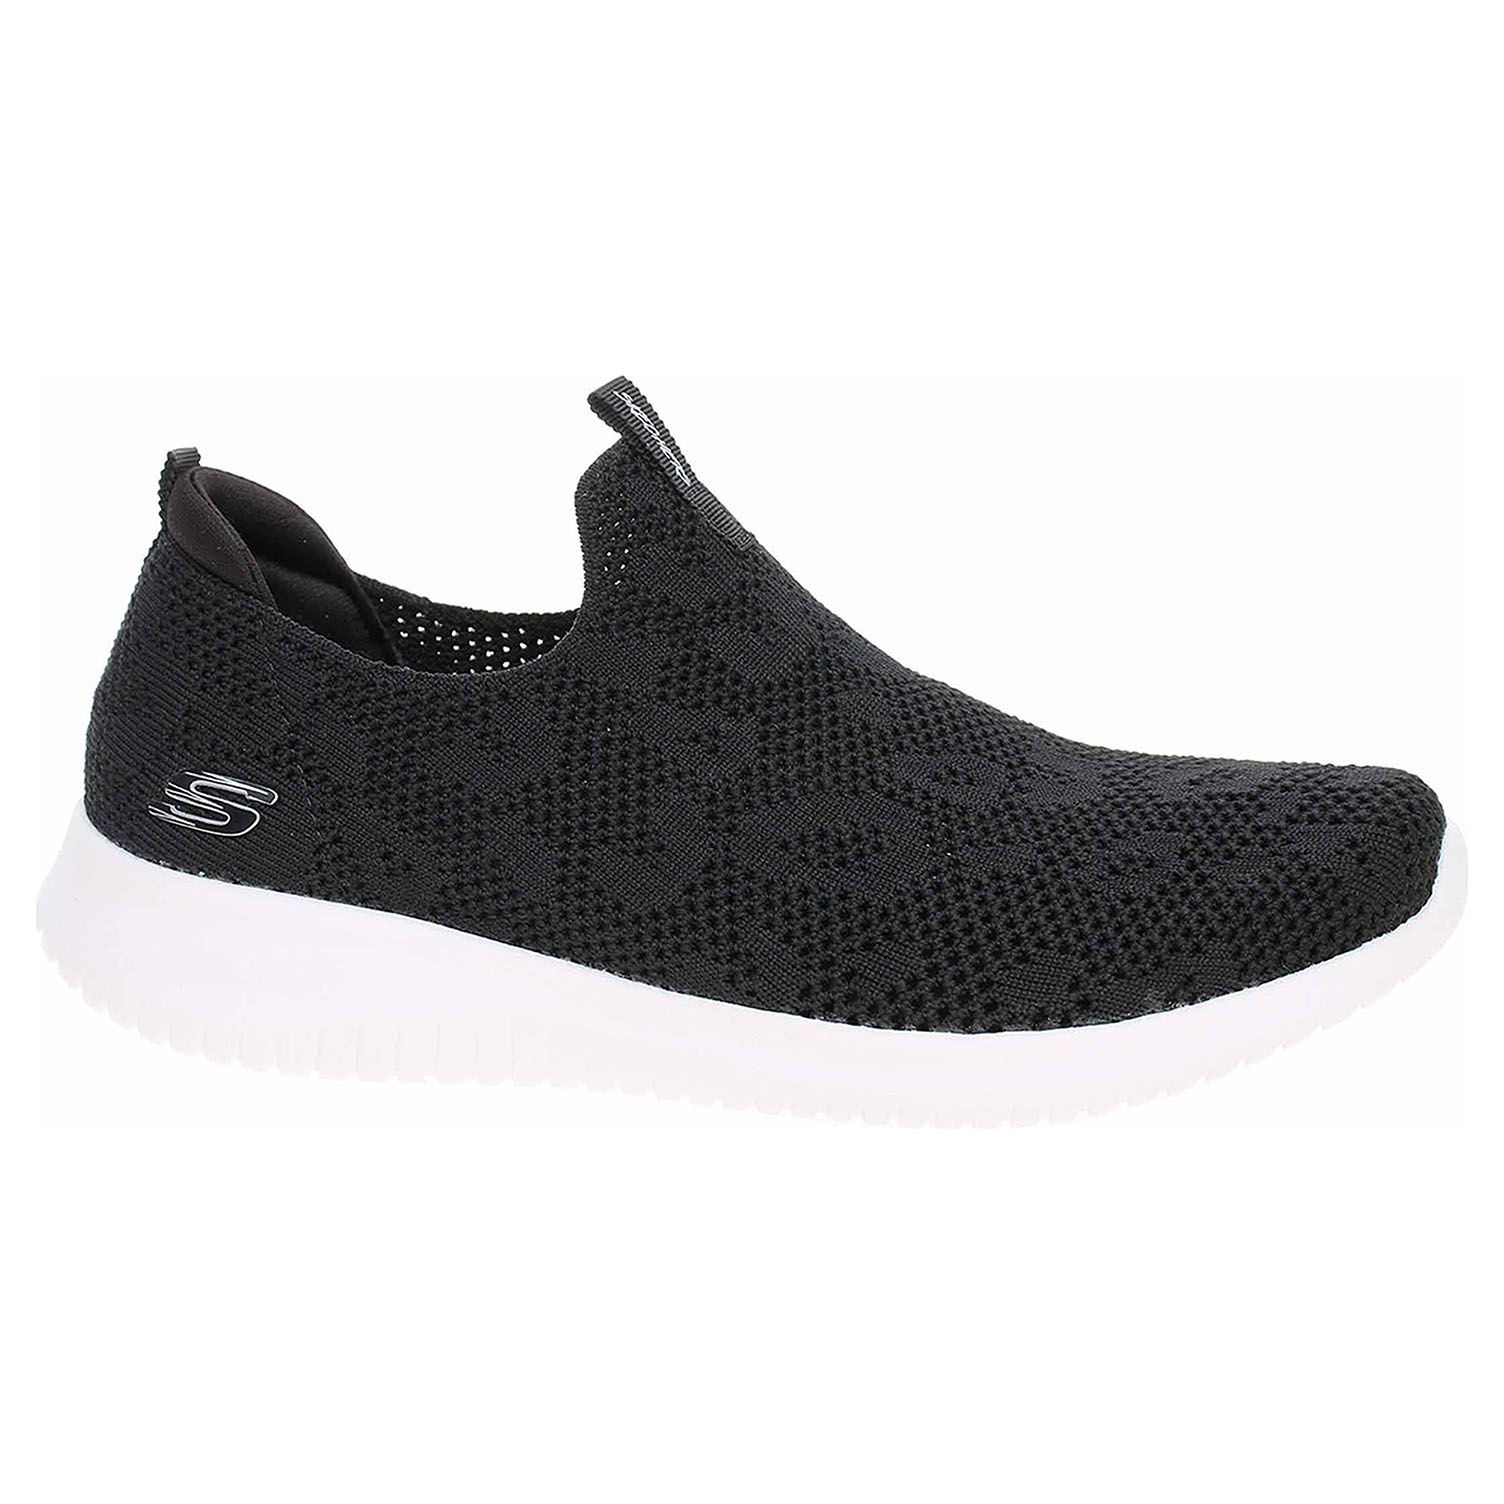 Skechers Ultra Flex - Fast Talker black-white 149009 BKW 39